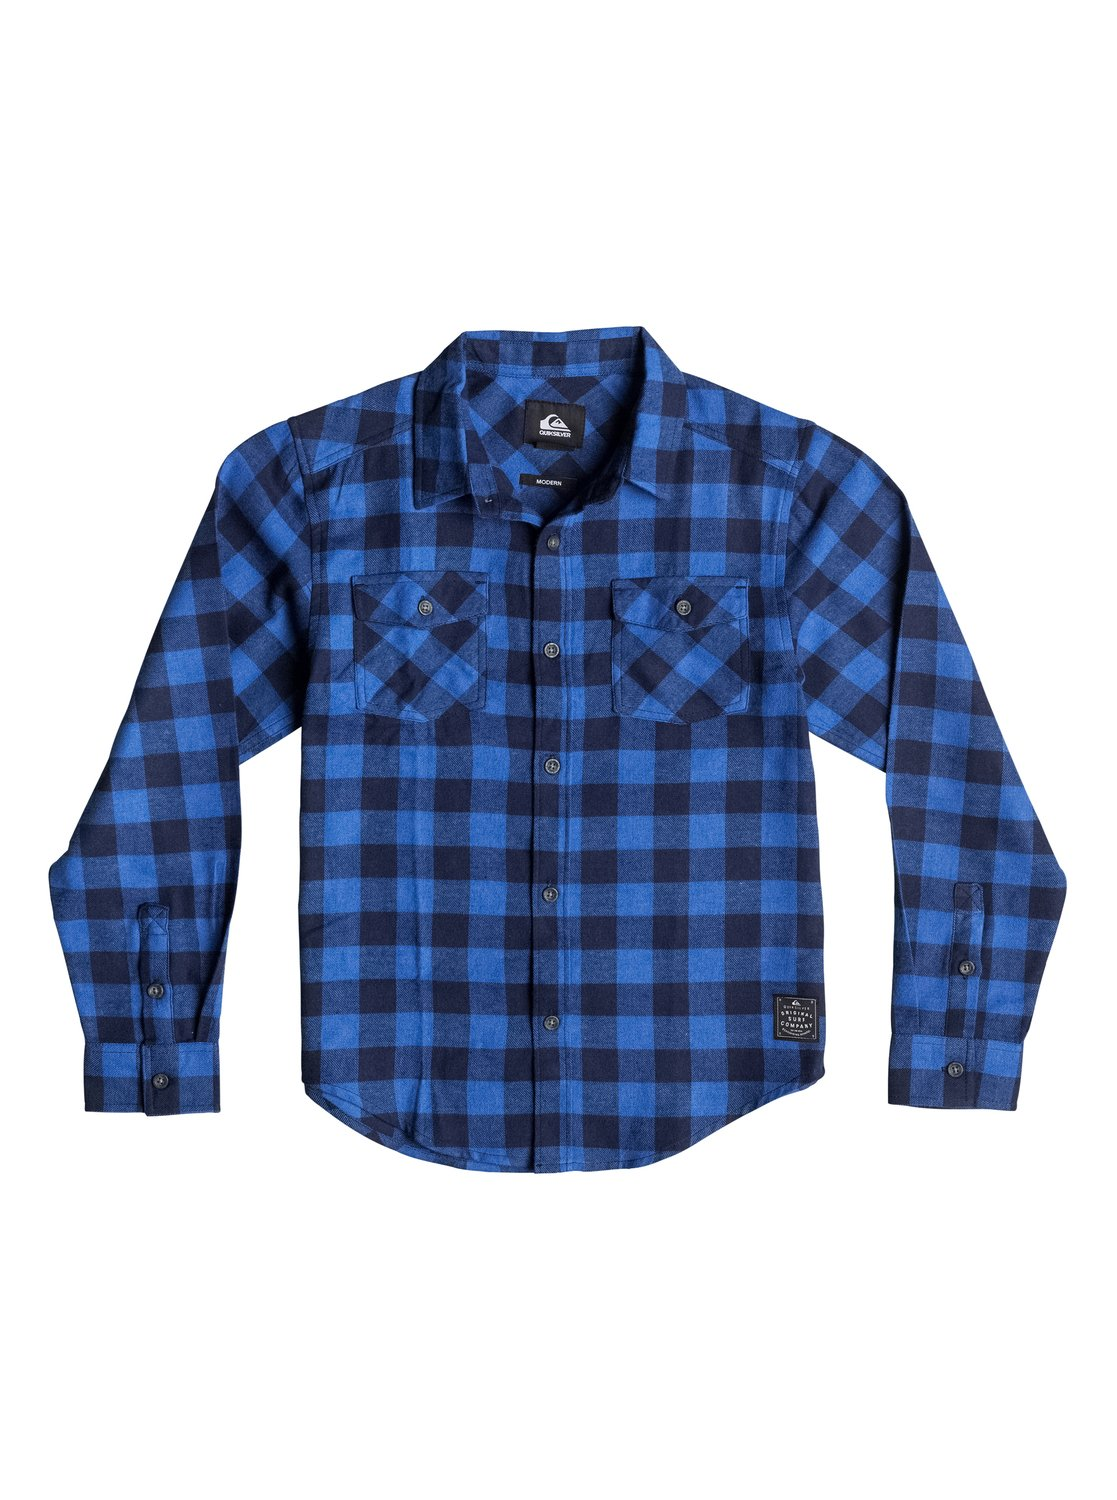 Wholesale Boys Flannel Shirt Manufacturer in USA, Canada, Australia, UAE. One of the choicest manufacturing hubs for different kinds of flannel outfits, Flannel Clothing produces incredible outfits with ultimate verve and flair, reflecting a blend of style and functionality.